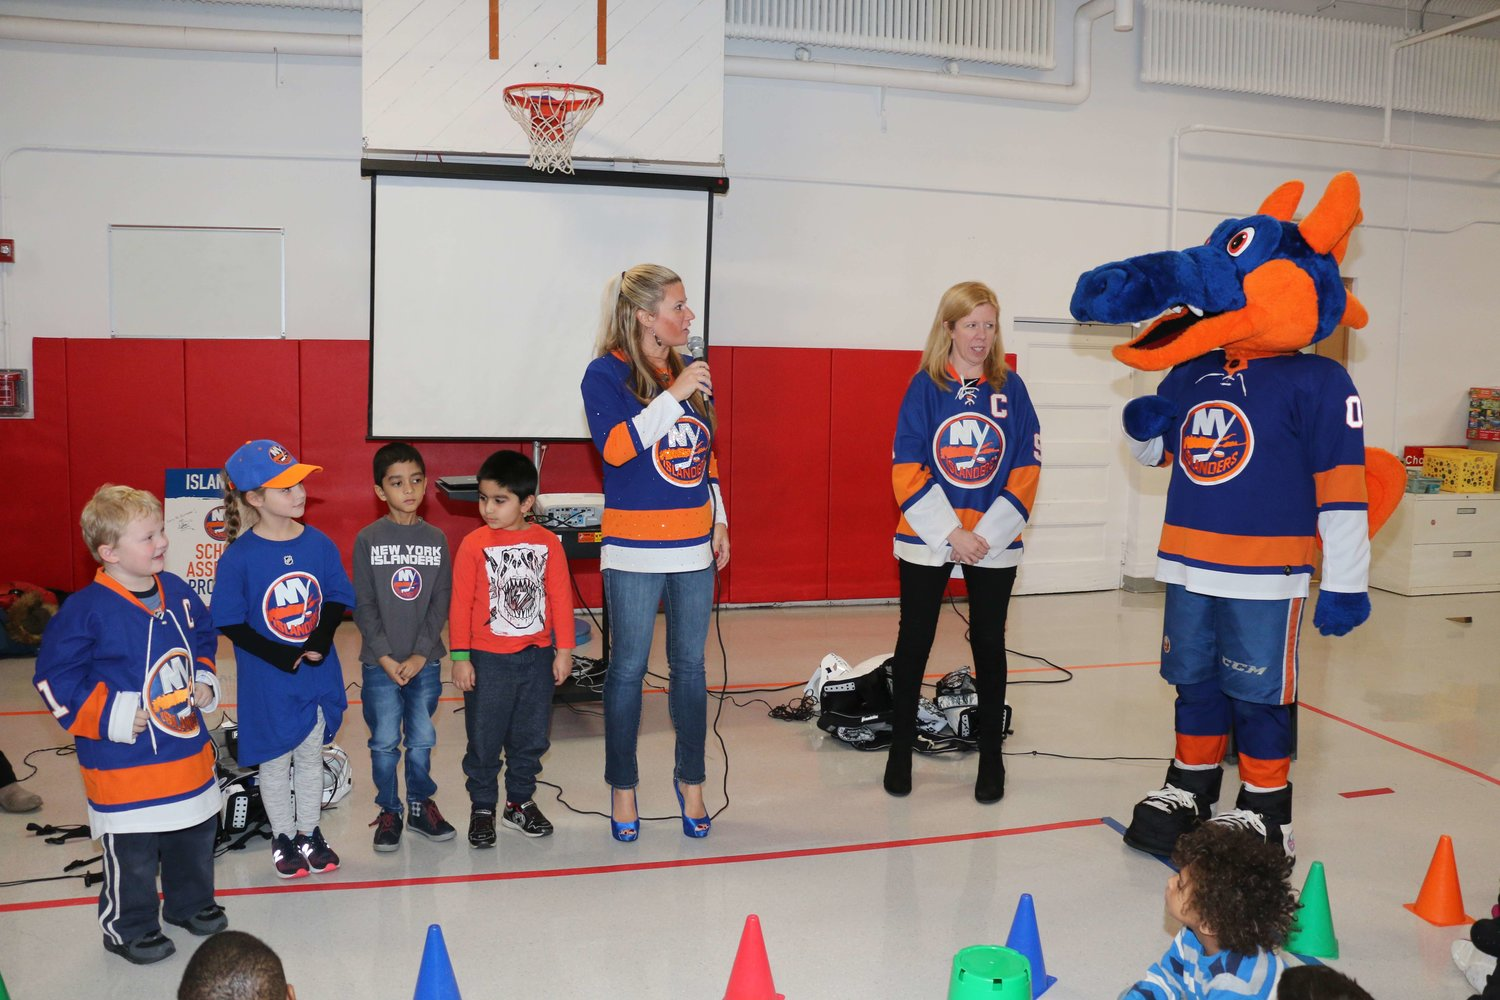 New York Islander's mascot Sparky the Dragon, along with ICE Tour member Dina Tsiorvas, center, made a visit to Chestnut Street School on Jan. 3 for a special assembly on teamwork.